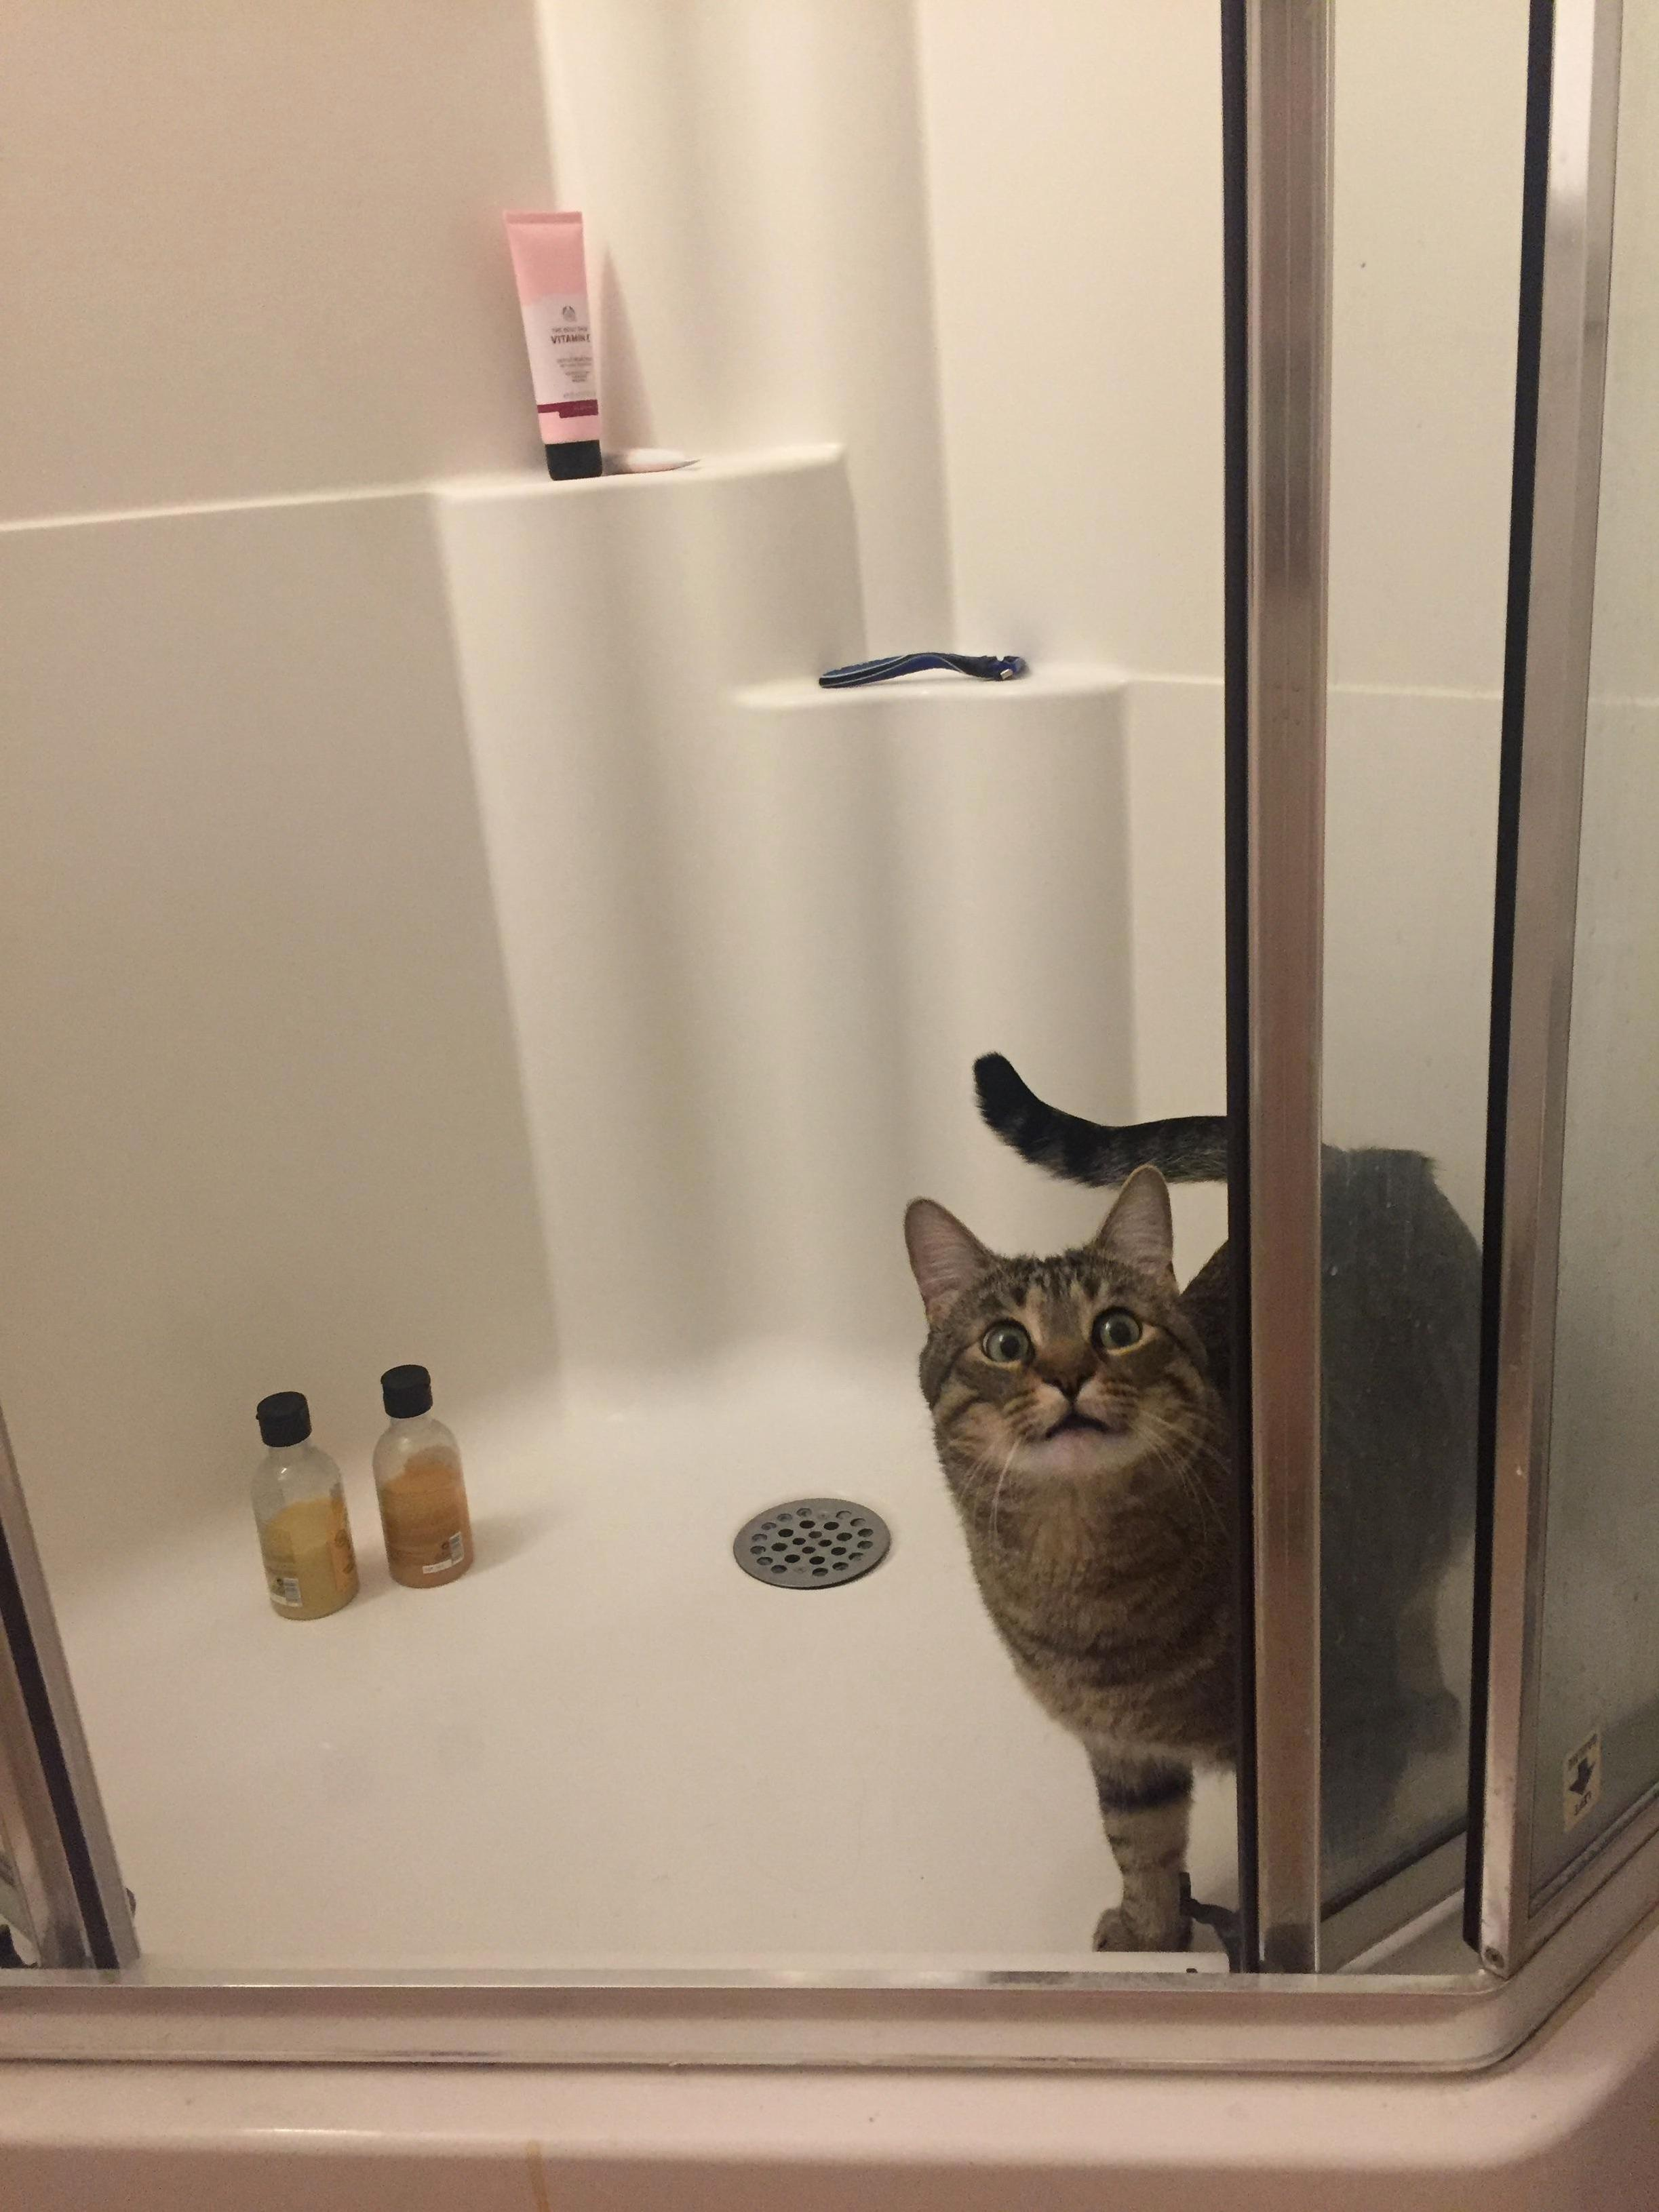 Our scaredy cat finally got the courage to go into the shower – and instantly regretted it.